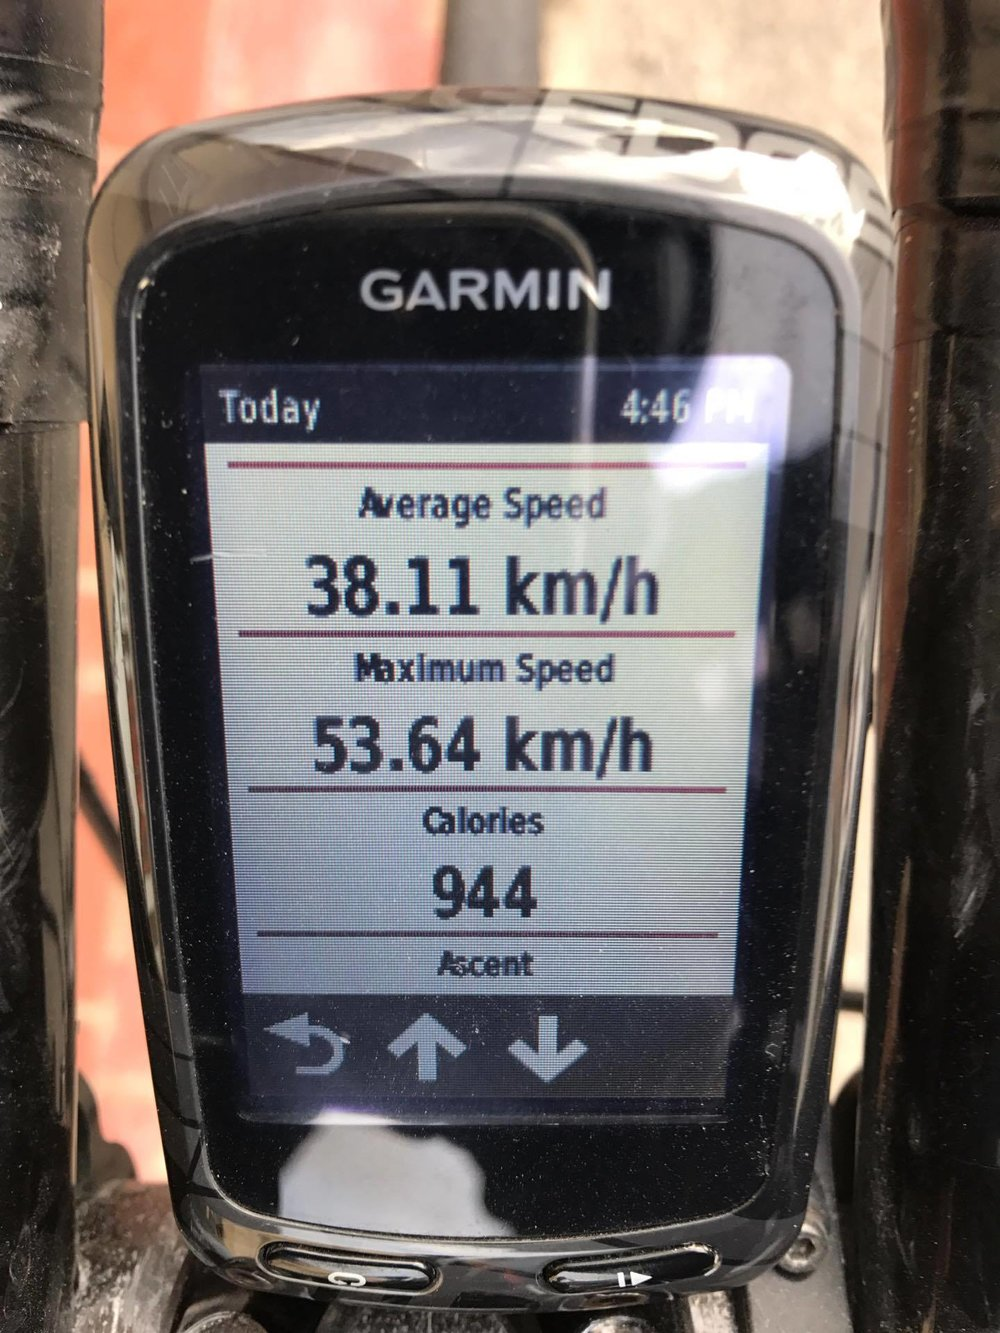 Iron Mike's Garmin-buddy